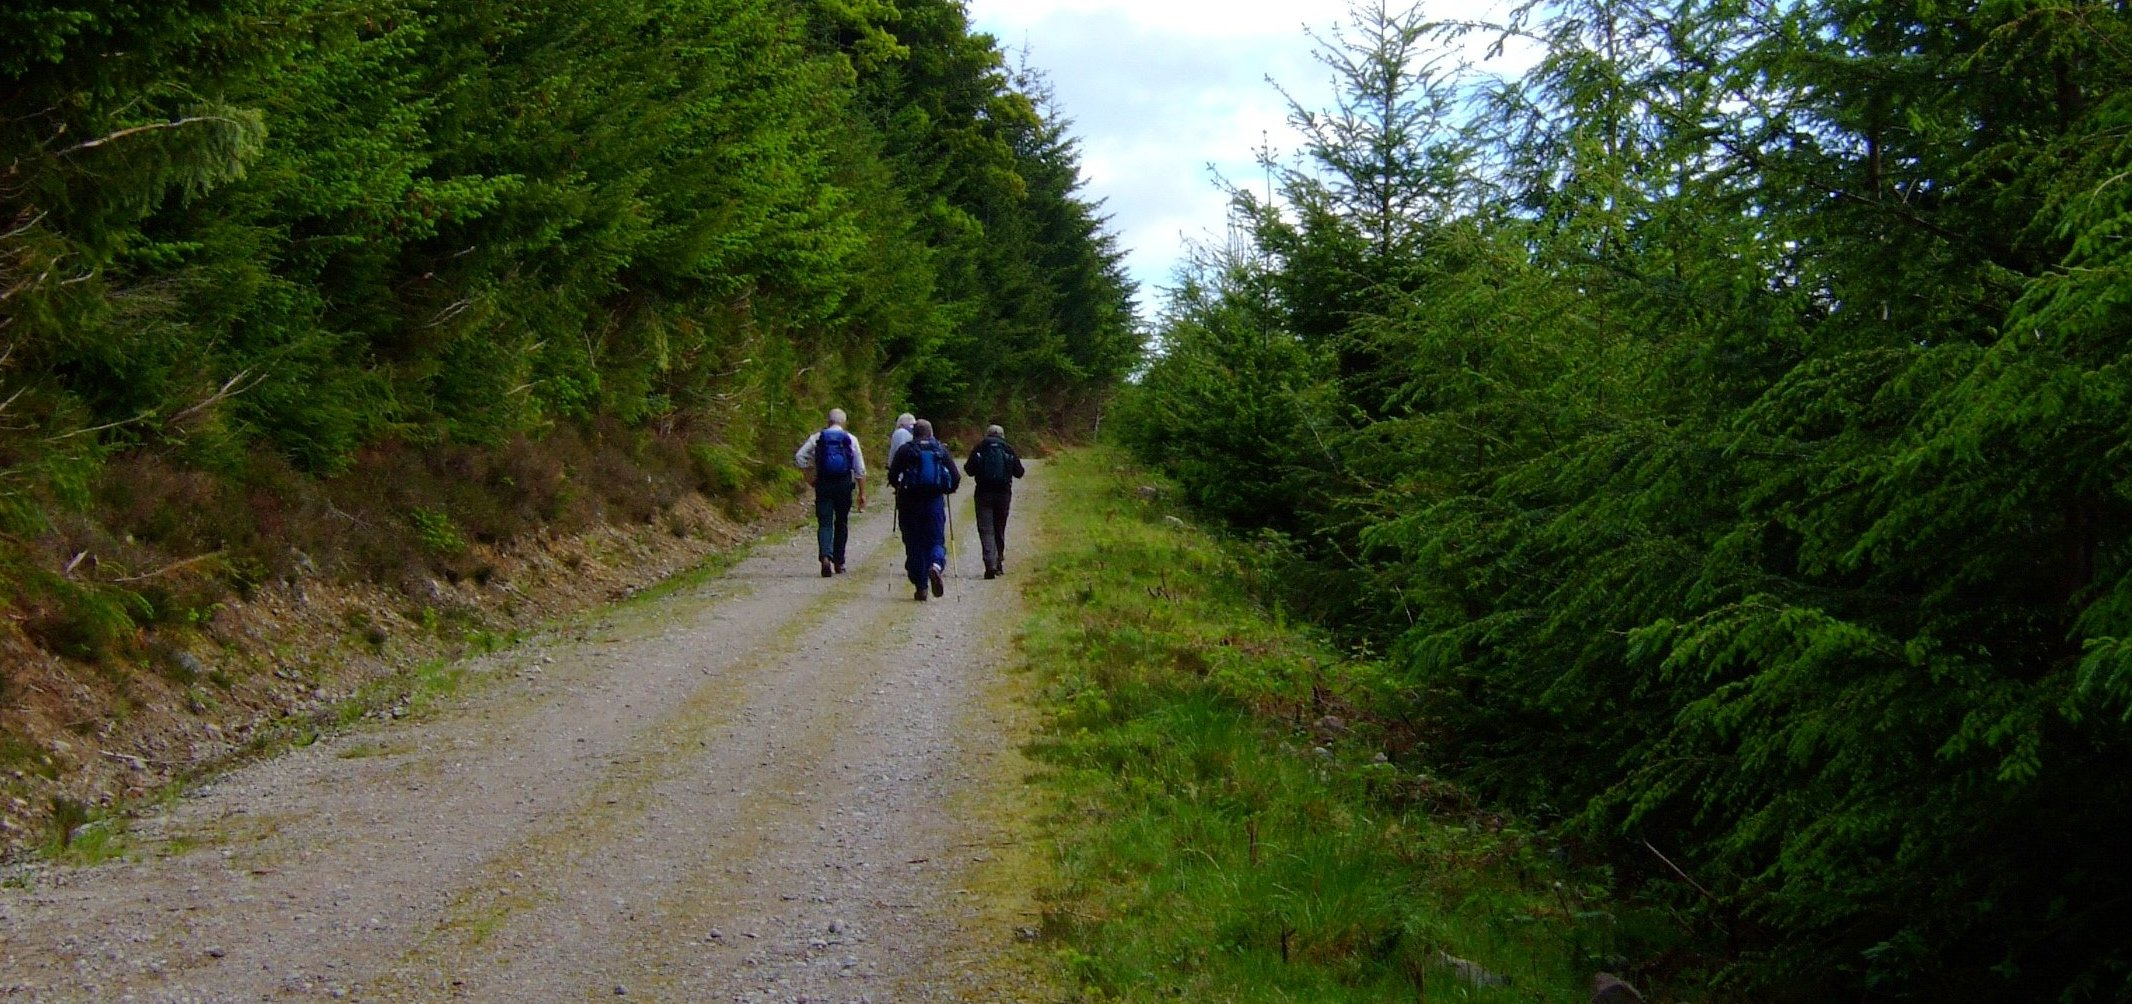 The forestry road from Invermoriston